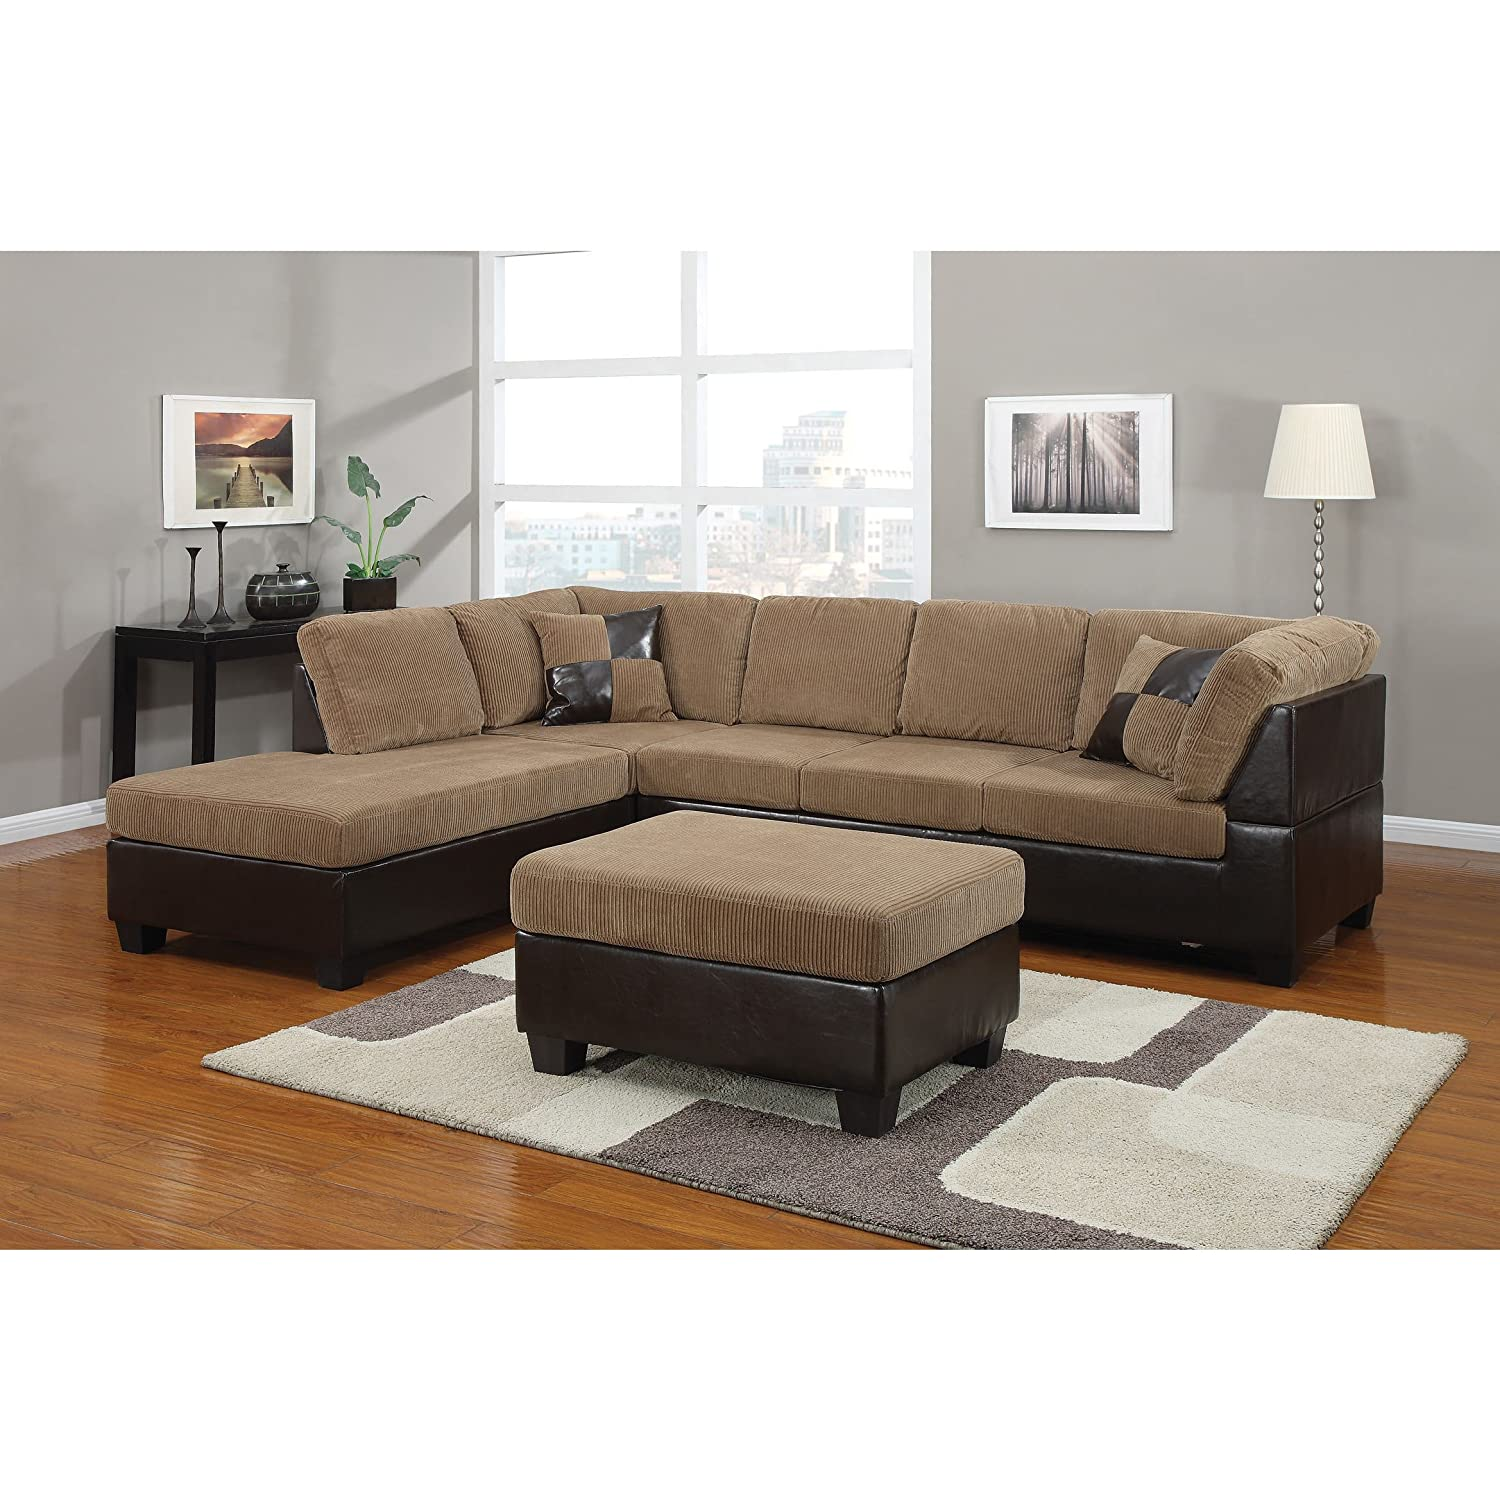 Amazon ACME Connell Sectional Sofa with Pillows